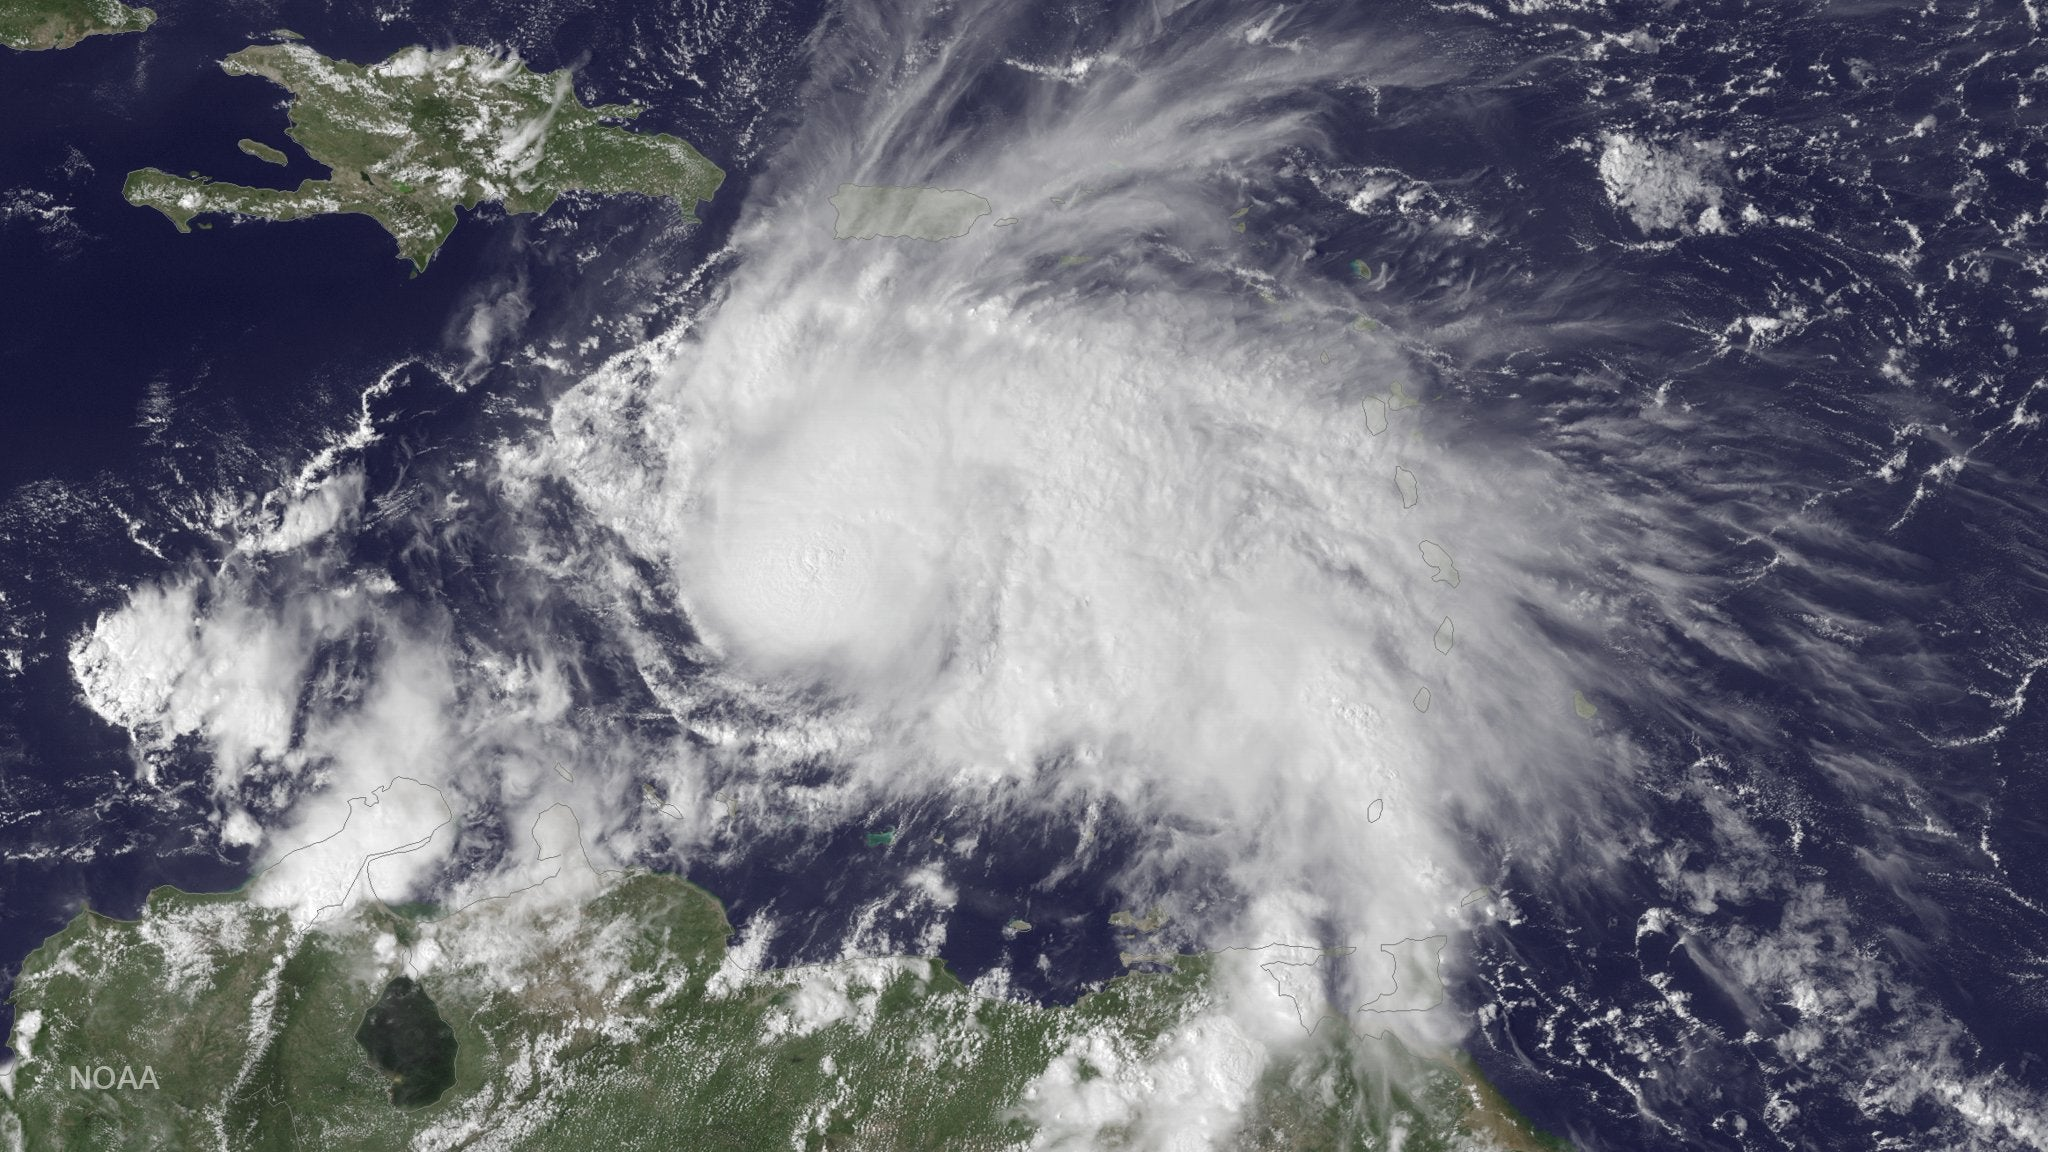 A Major Hurricane Just Developed Over The Caribbean